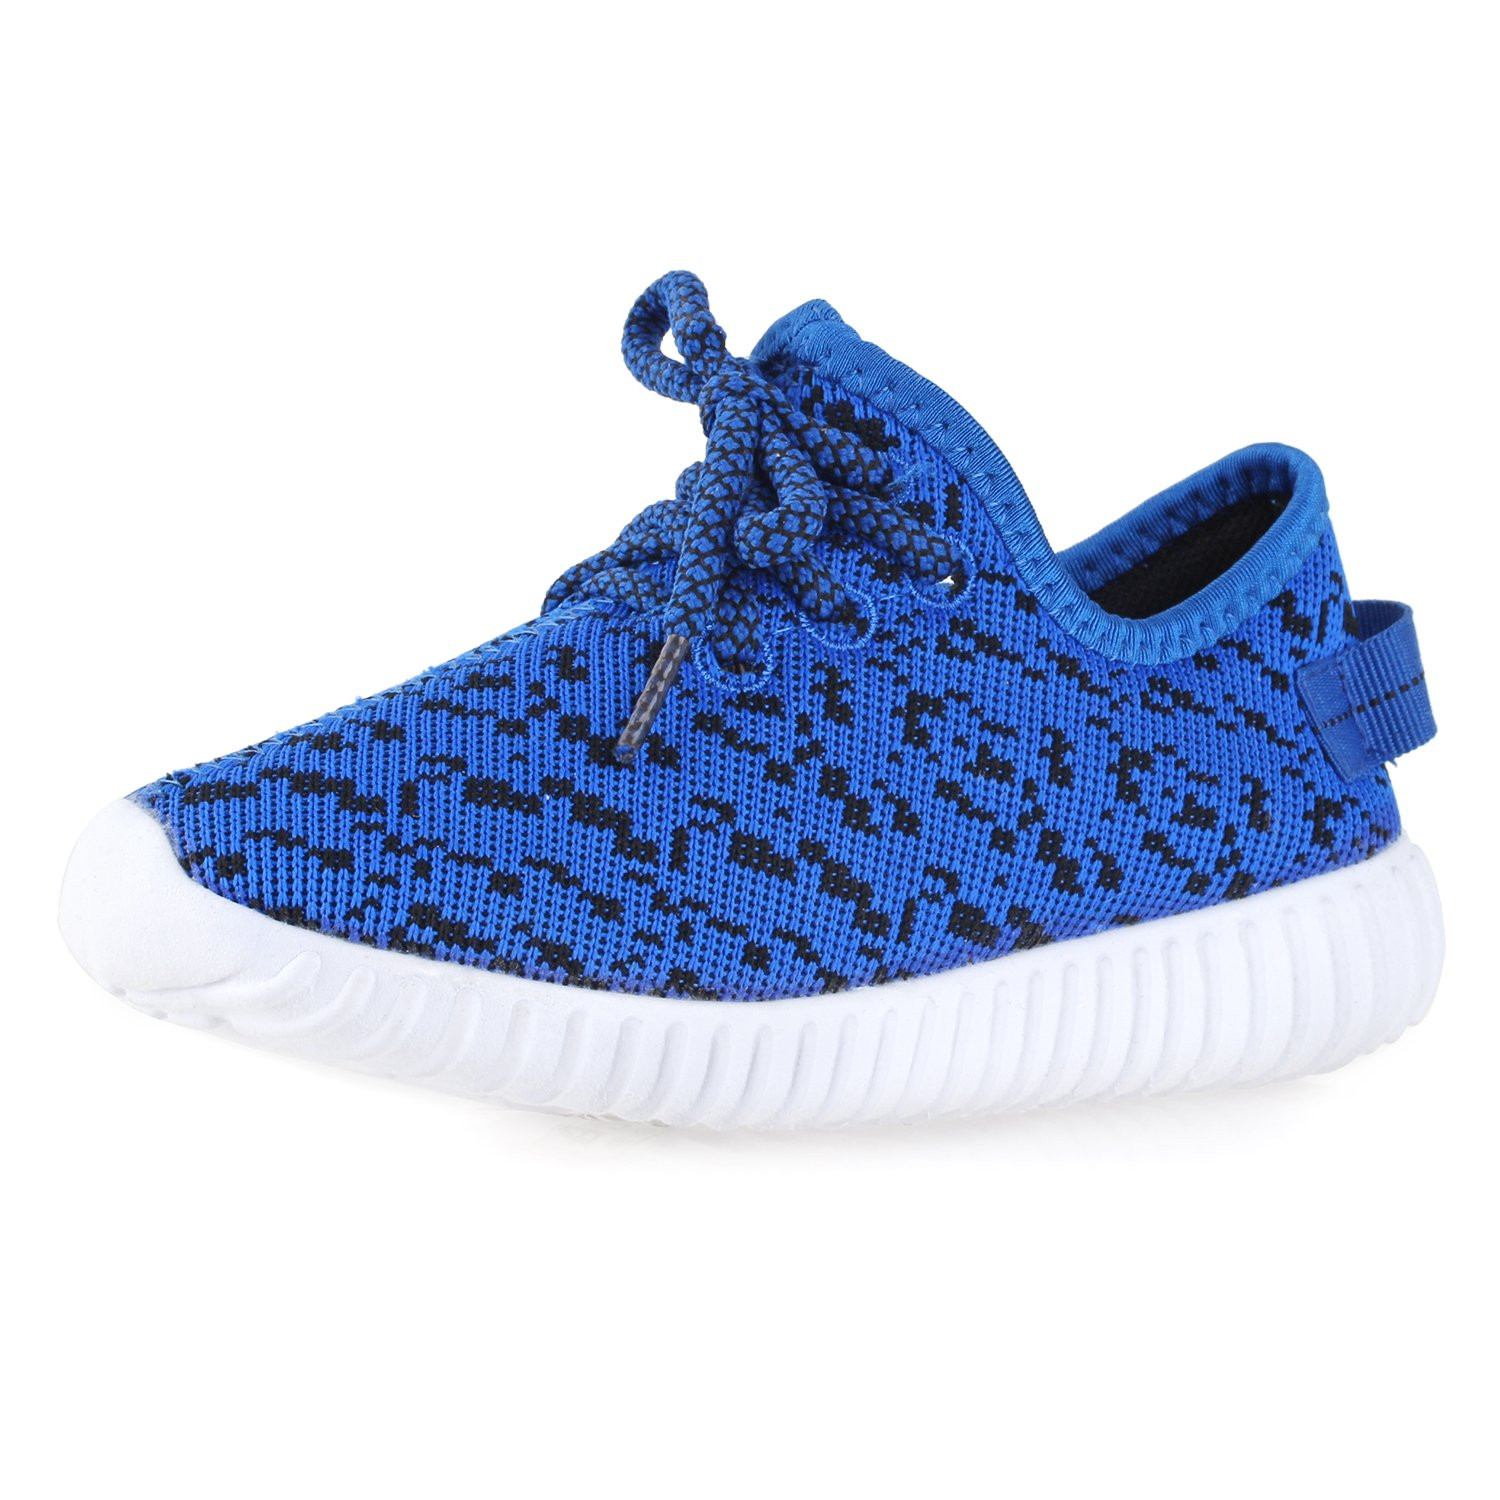 BLINX Boys Jogger Woven Knit Upper Casual Sneakers Shoes Royal Blue 13